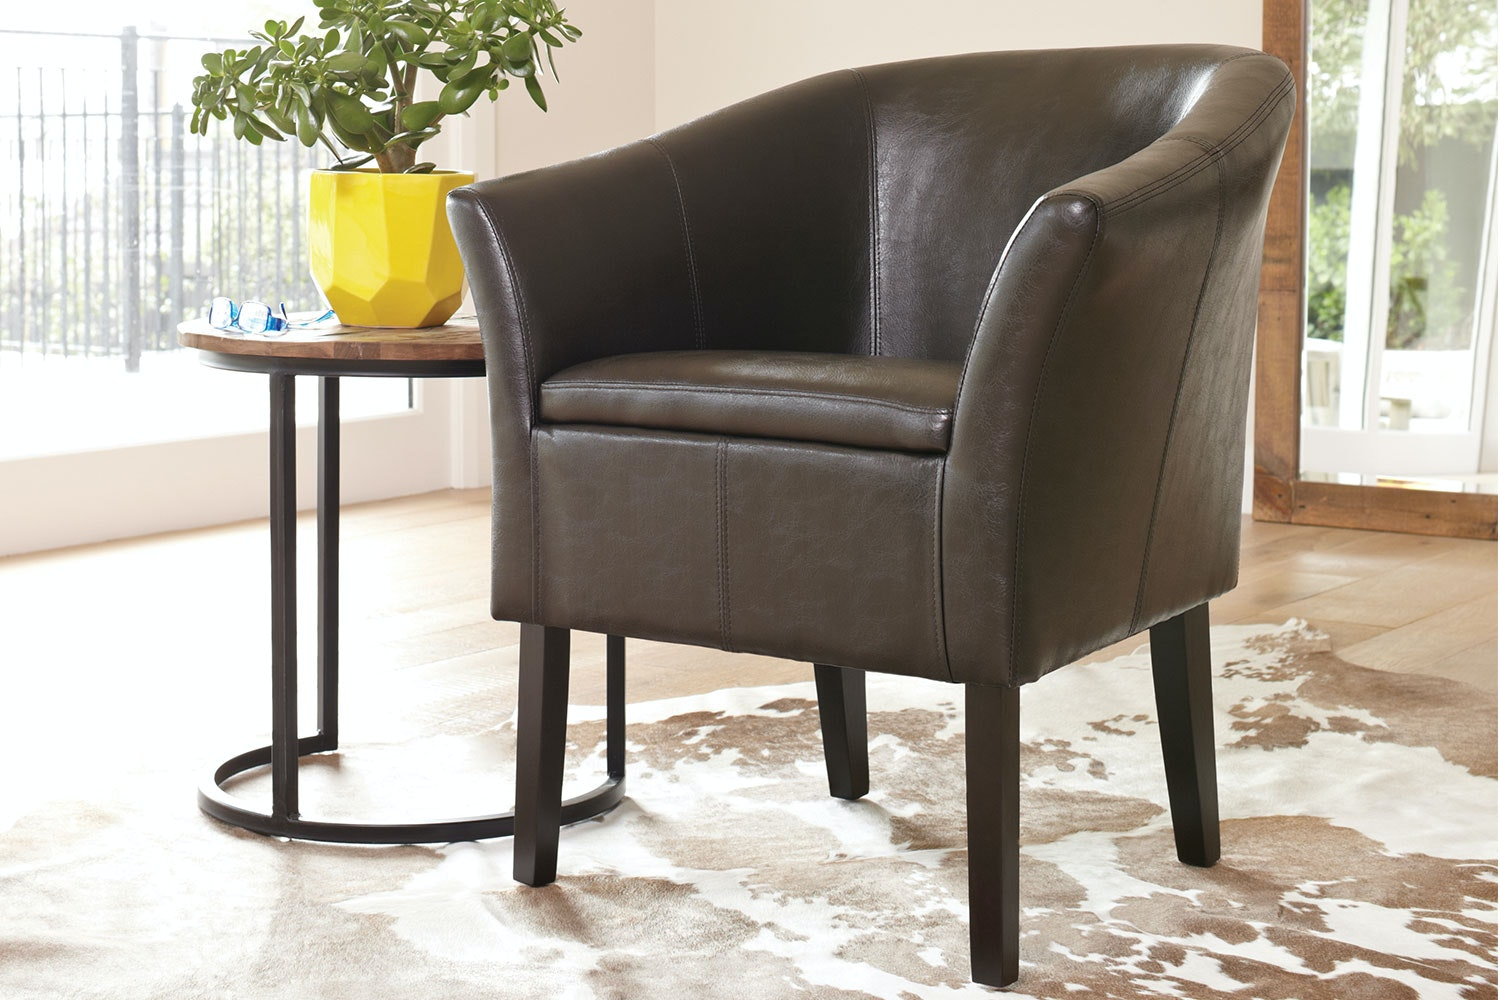 Brown Aria Tub Chair by Nero Furniture